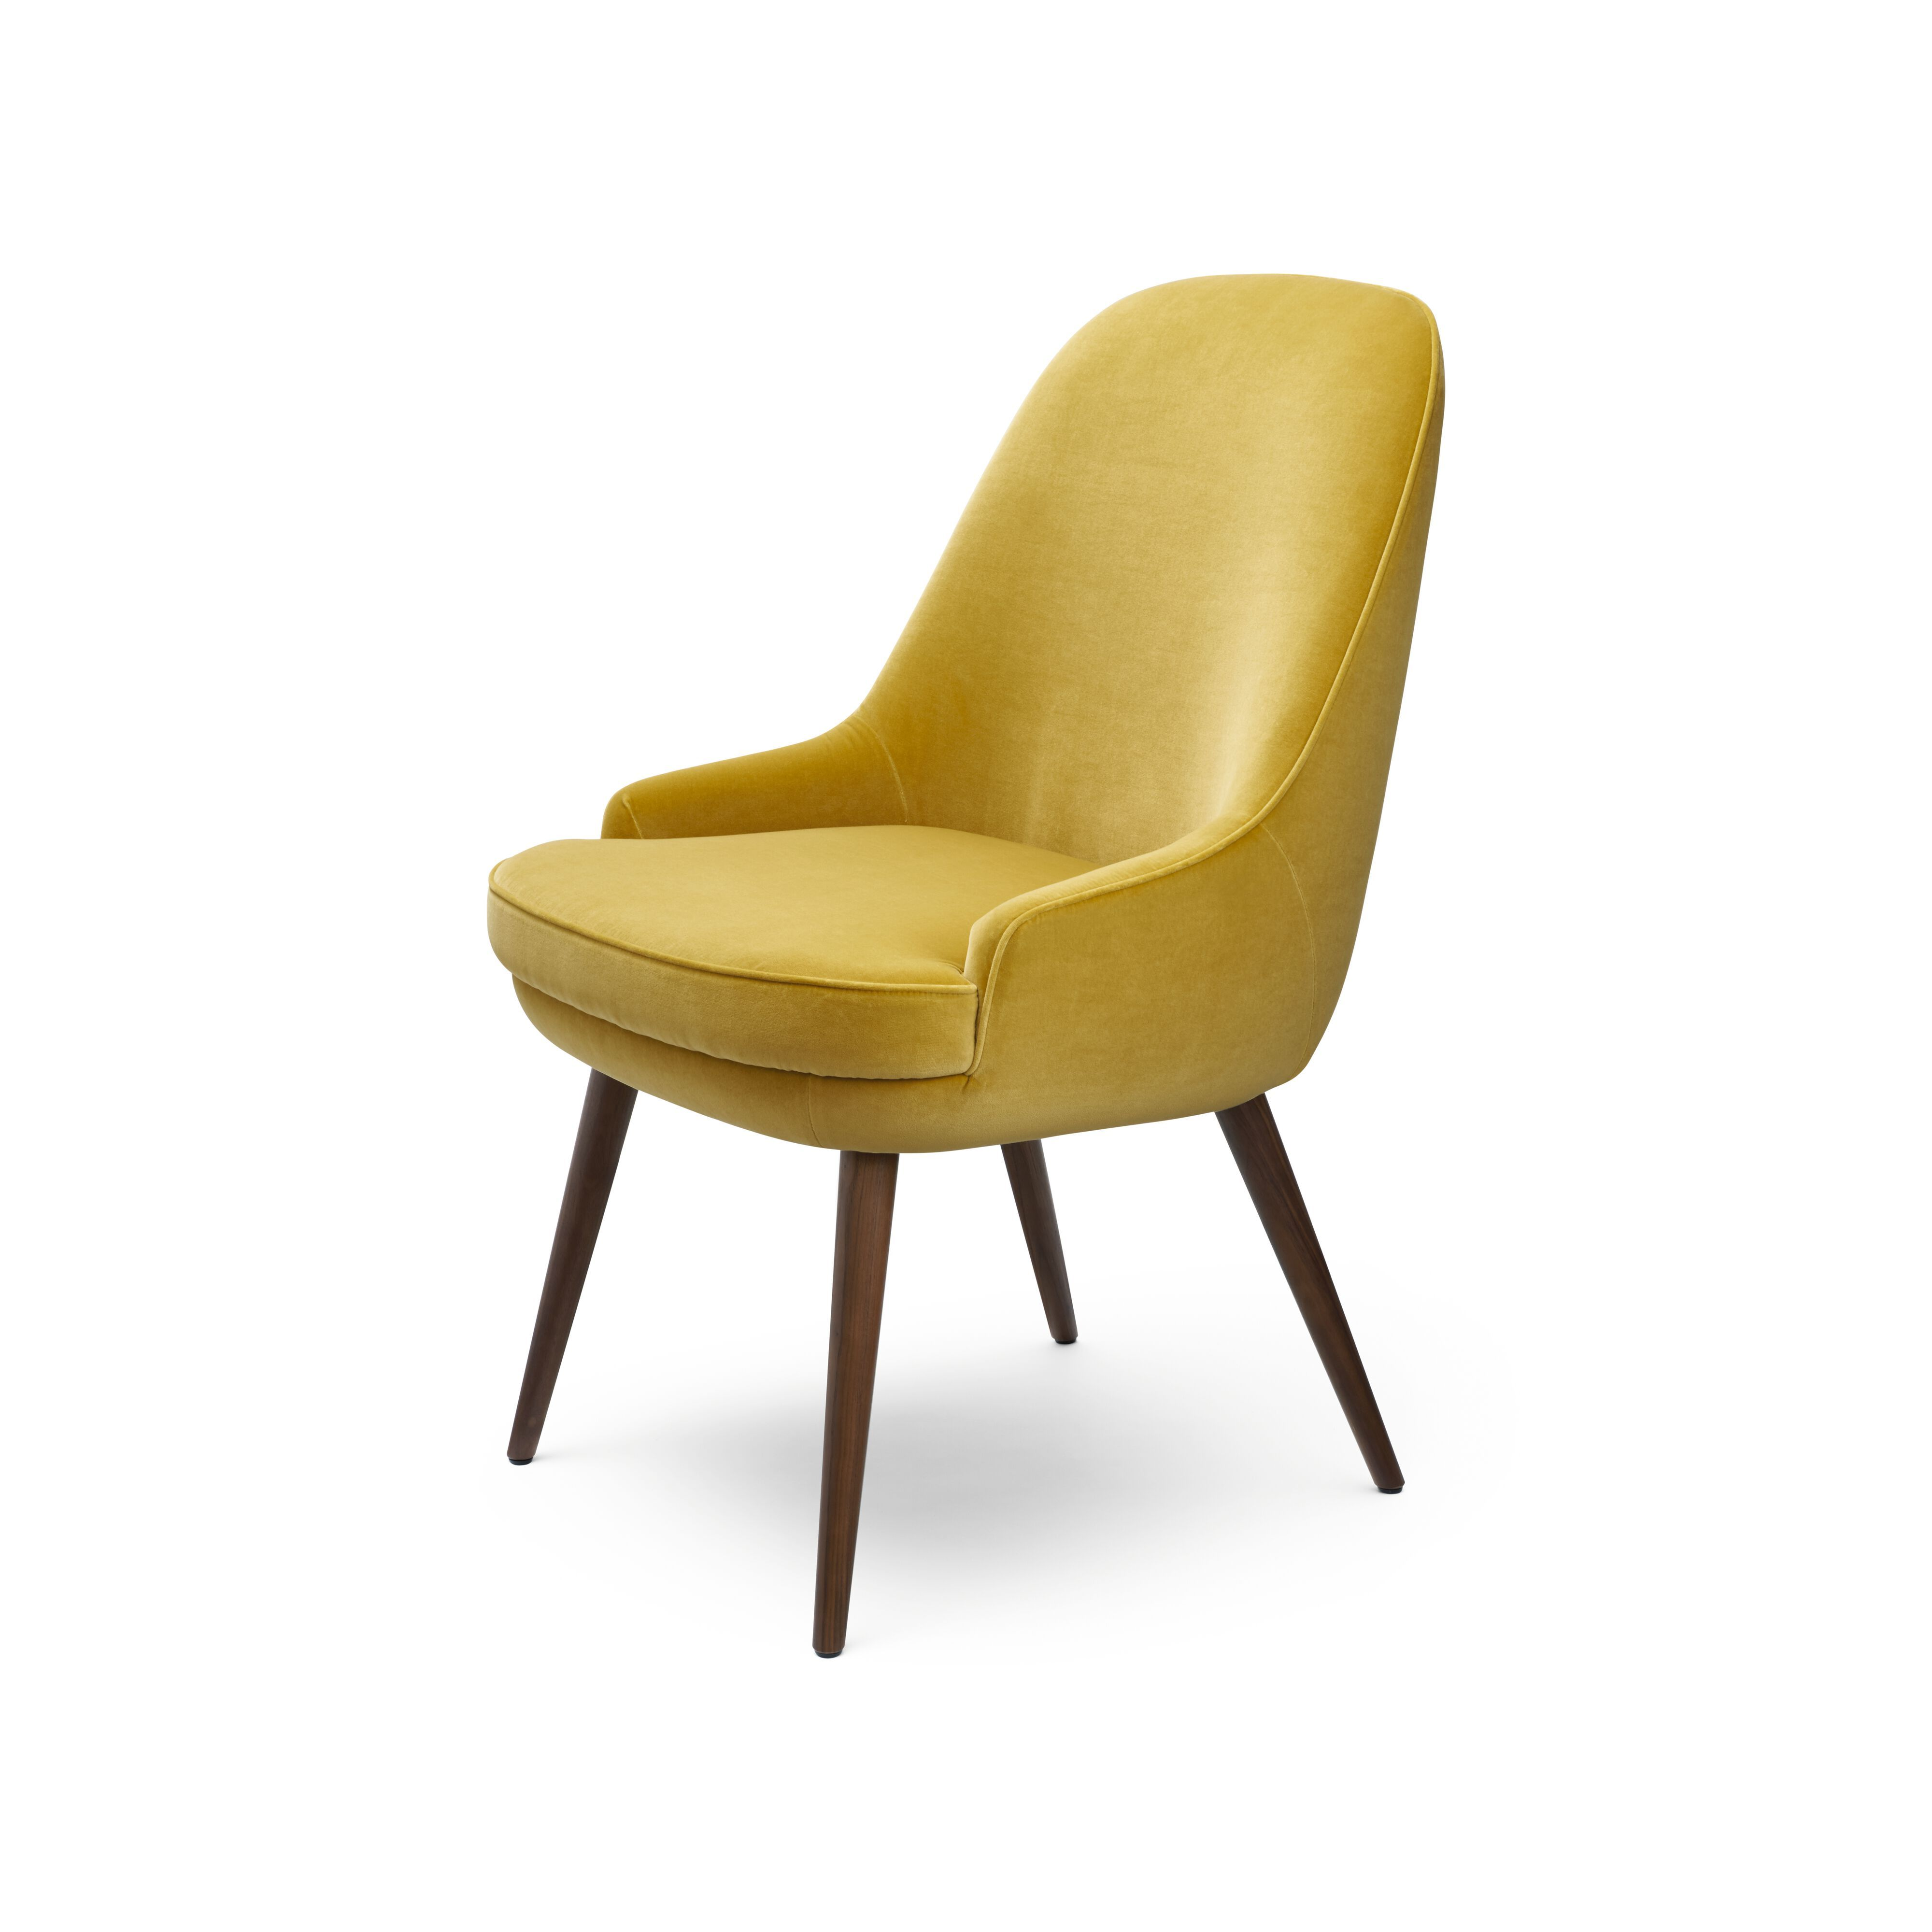 04_WK-375_Chair-Modell-1375-Dining-Chair-0007-H.tif